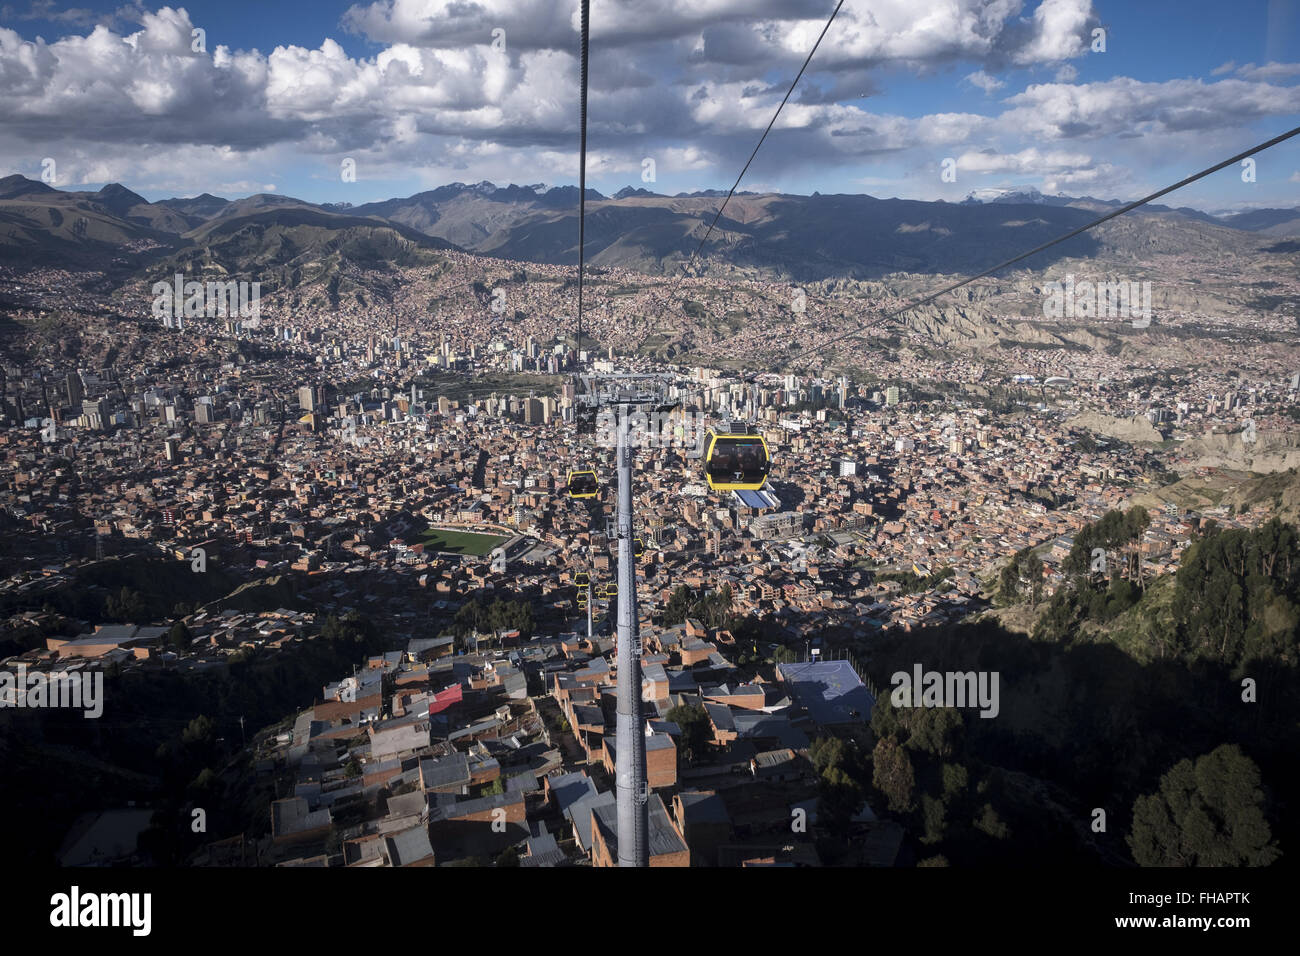 View of the city of La Paz from the cabin of the cable railway. - Stock Image